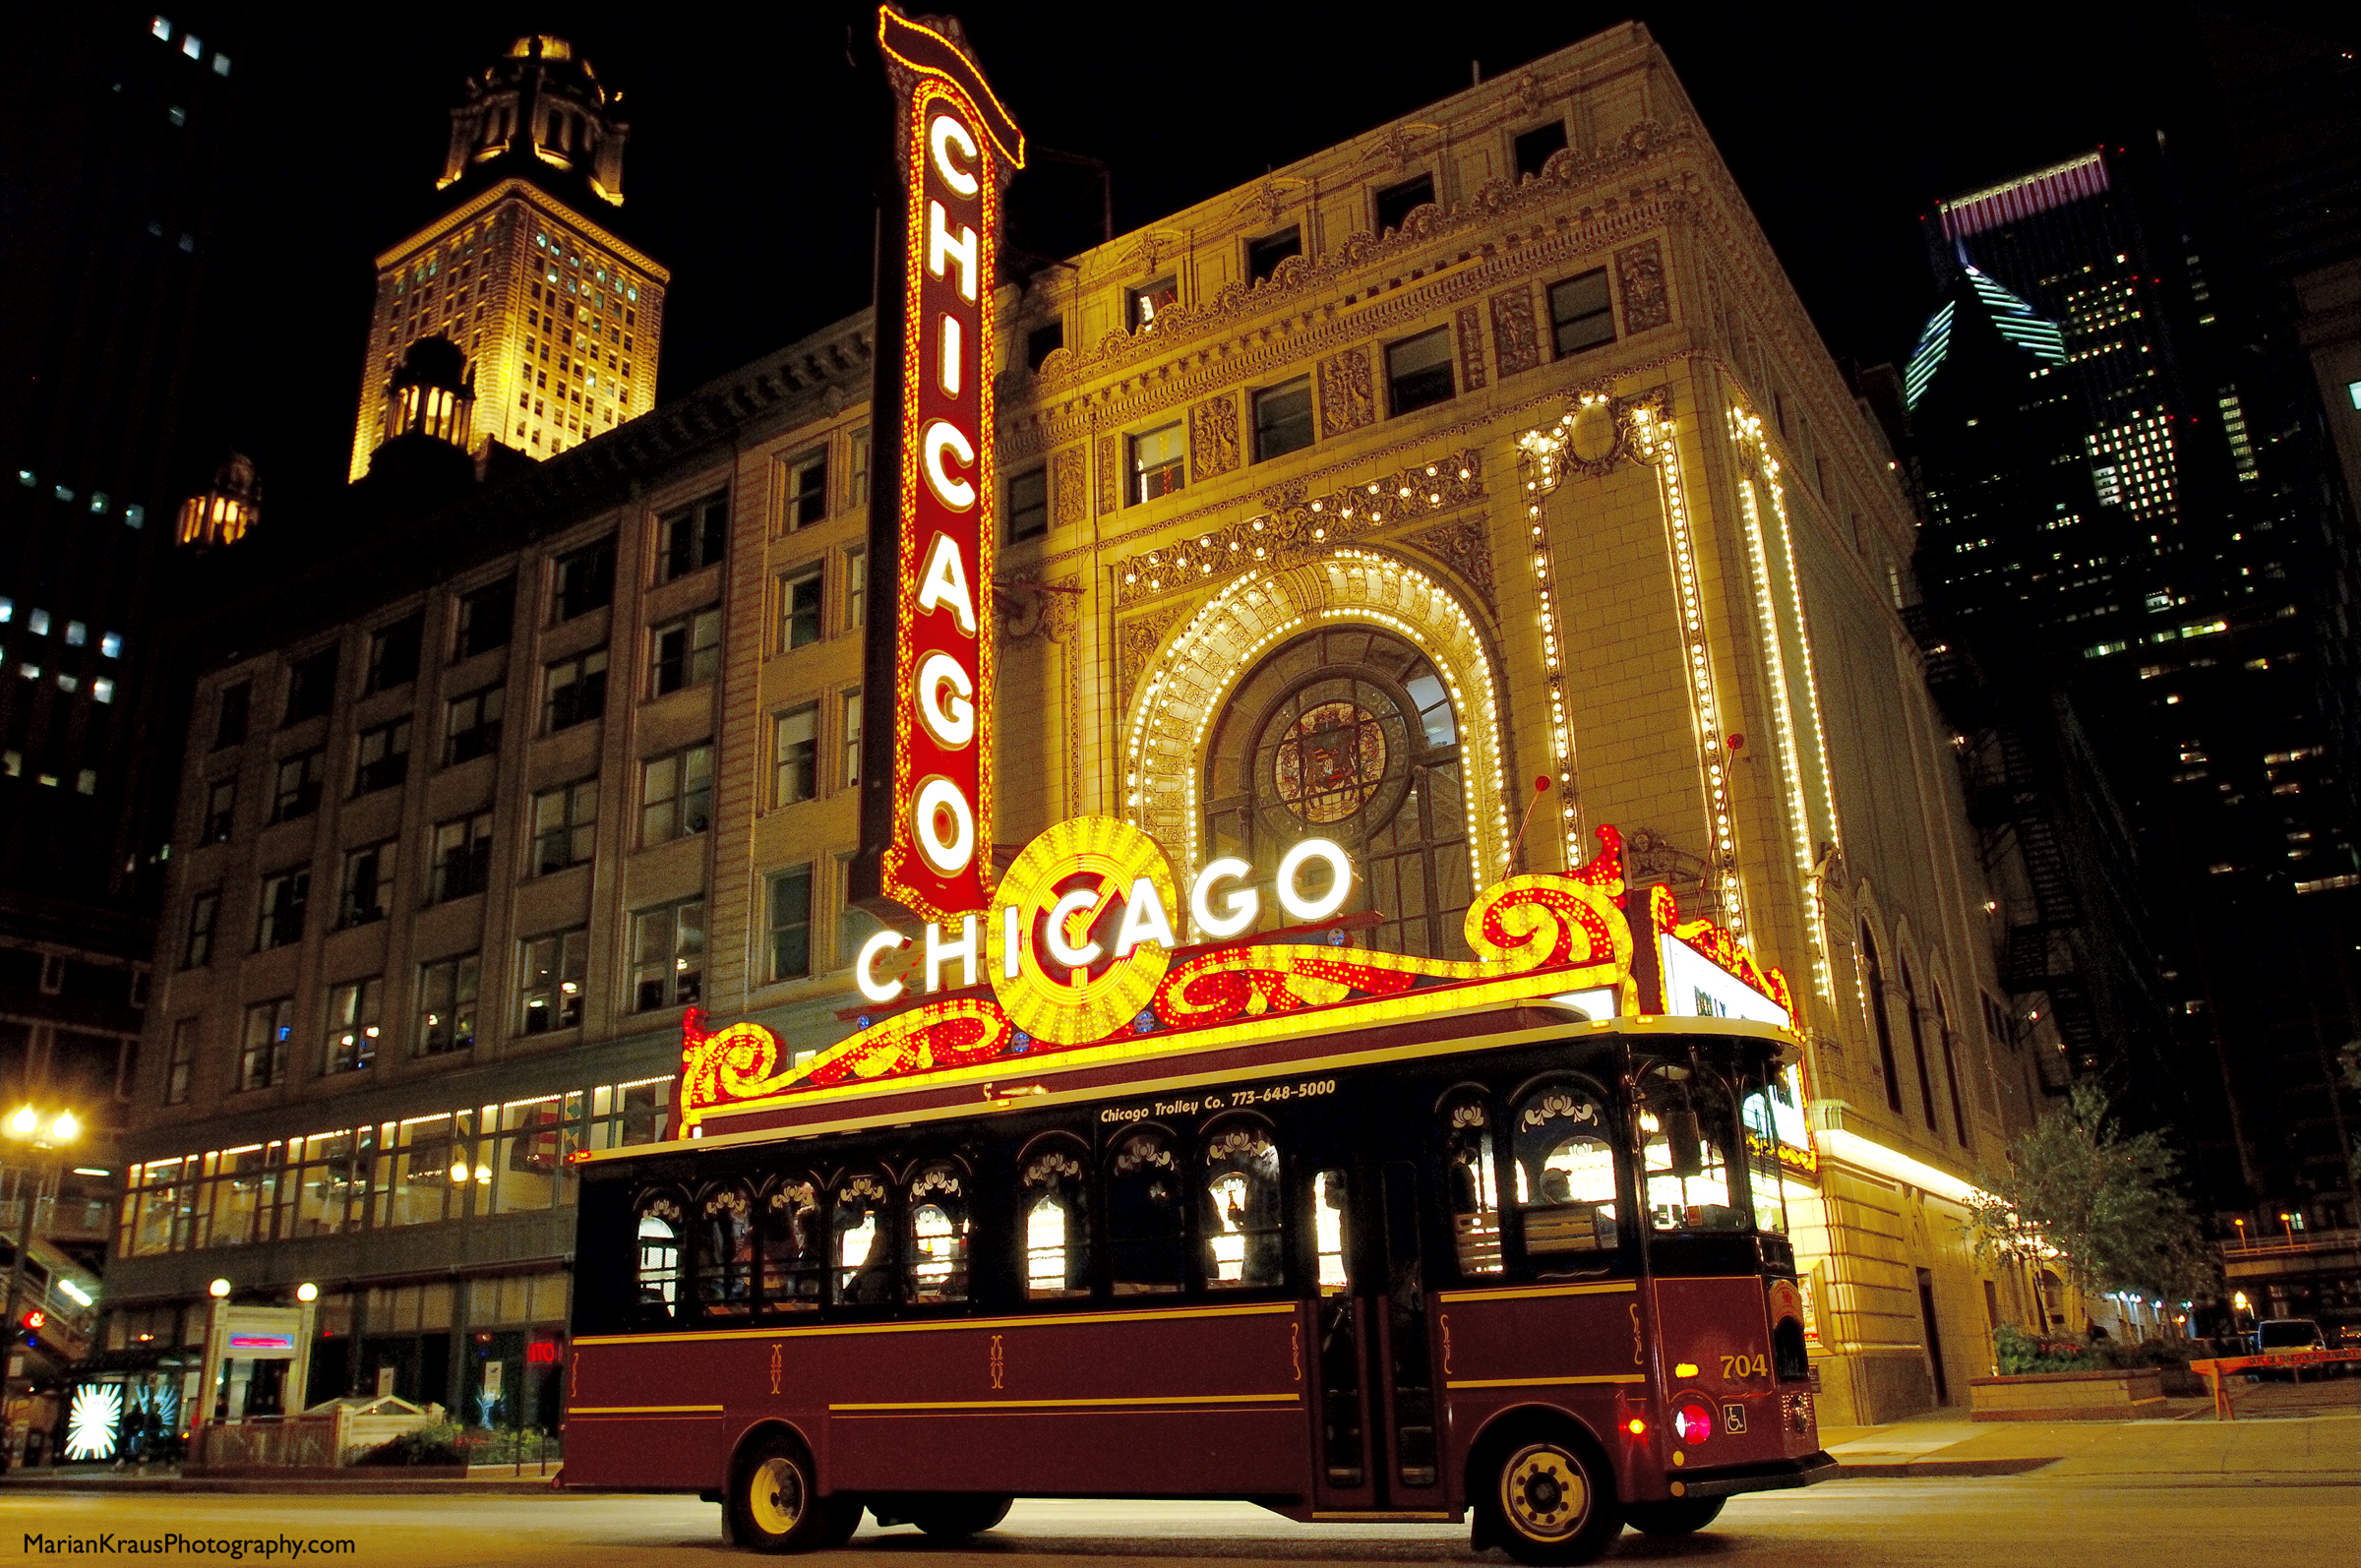 CHICAGO TROLLEY & DOUBLE DECKER COMPANY–Getting around Chicago on the Cheap!